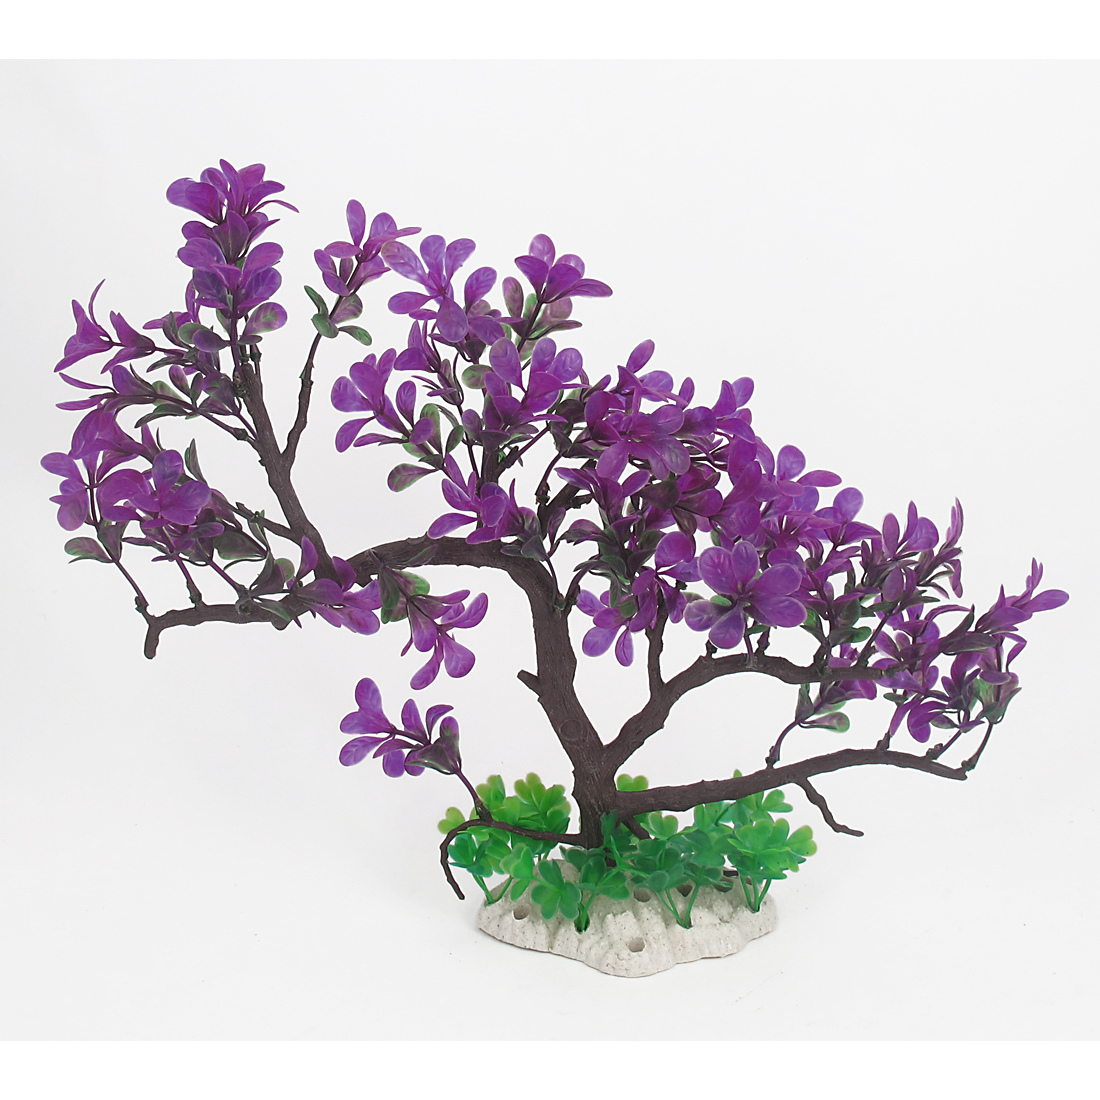 "12.4"" Height Green Purple Ceramic Base Plastic Emulational Decor Aquascaping Tree Shaped Grasses Plant for Fish Tank Aquarium"